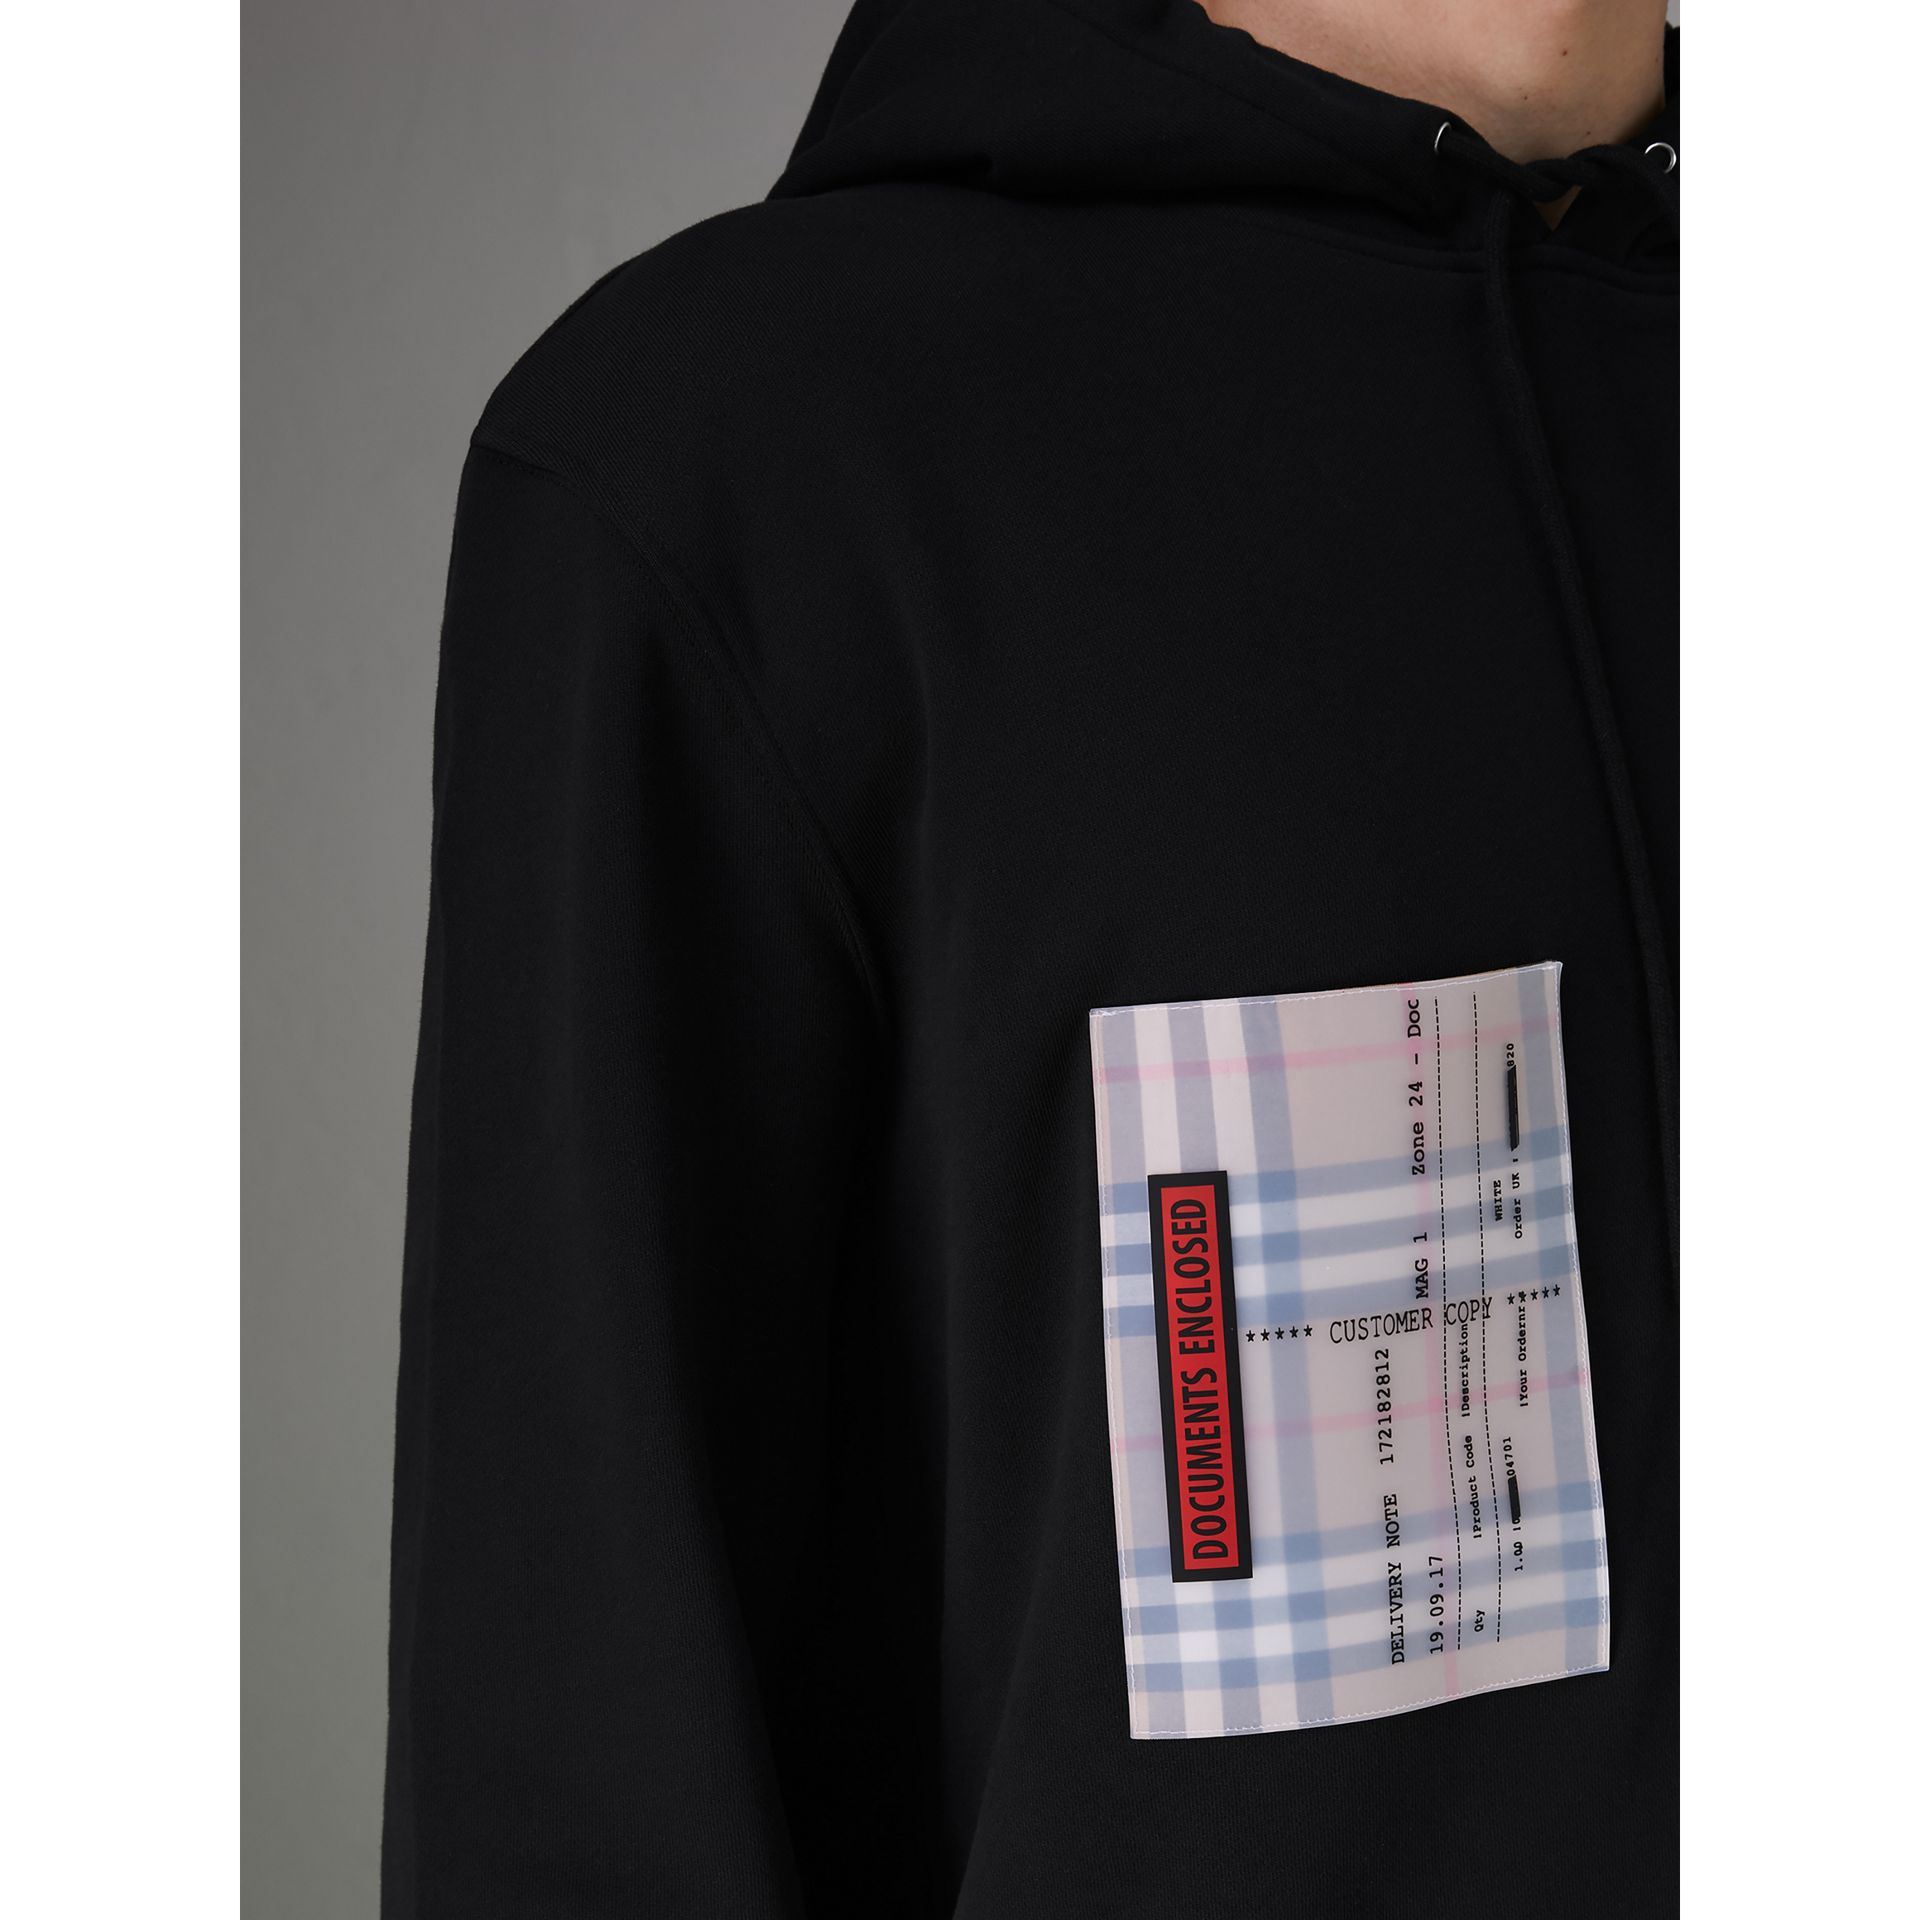 Ticket Print Pocket Cotton Jersey Hoodie in Black - Men | Burberry - gallery image 1